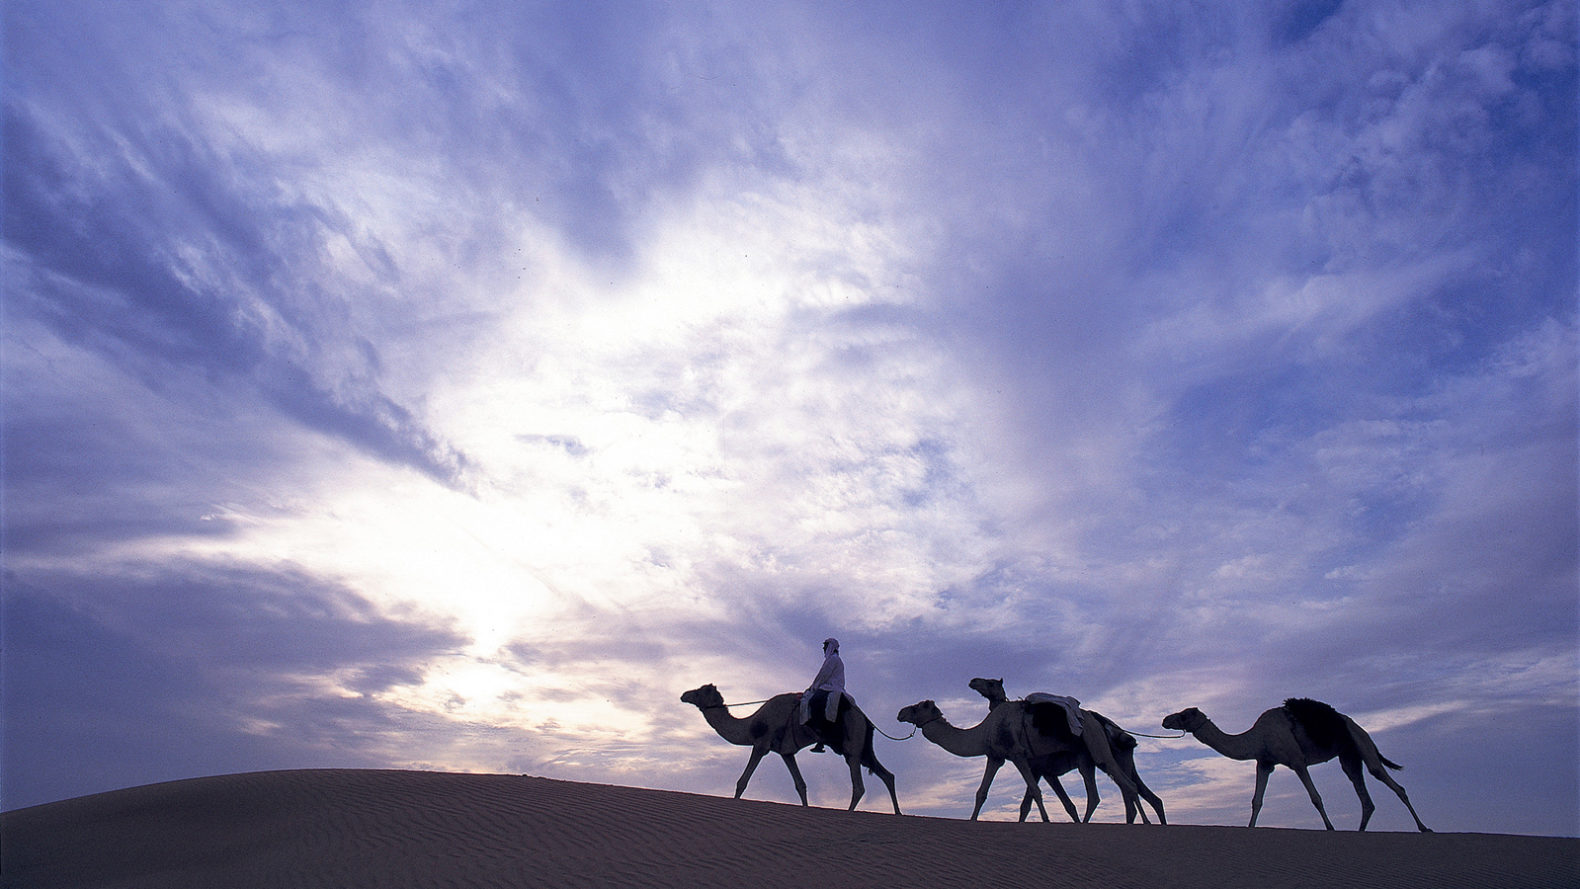 camel-ride-adventure-al-maha-resort-hotel-dubai